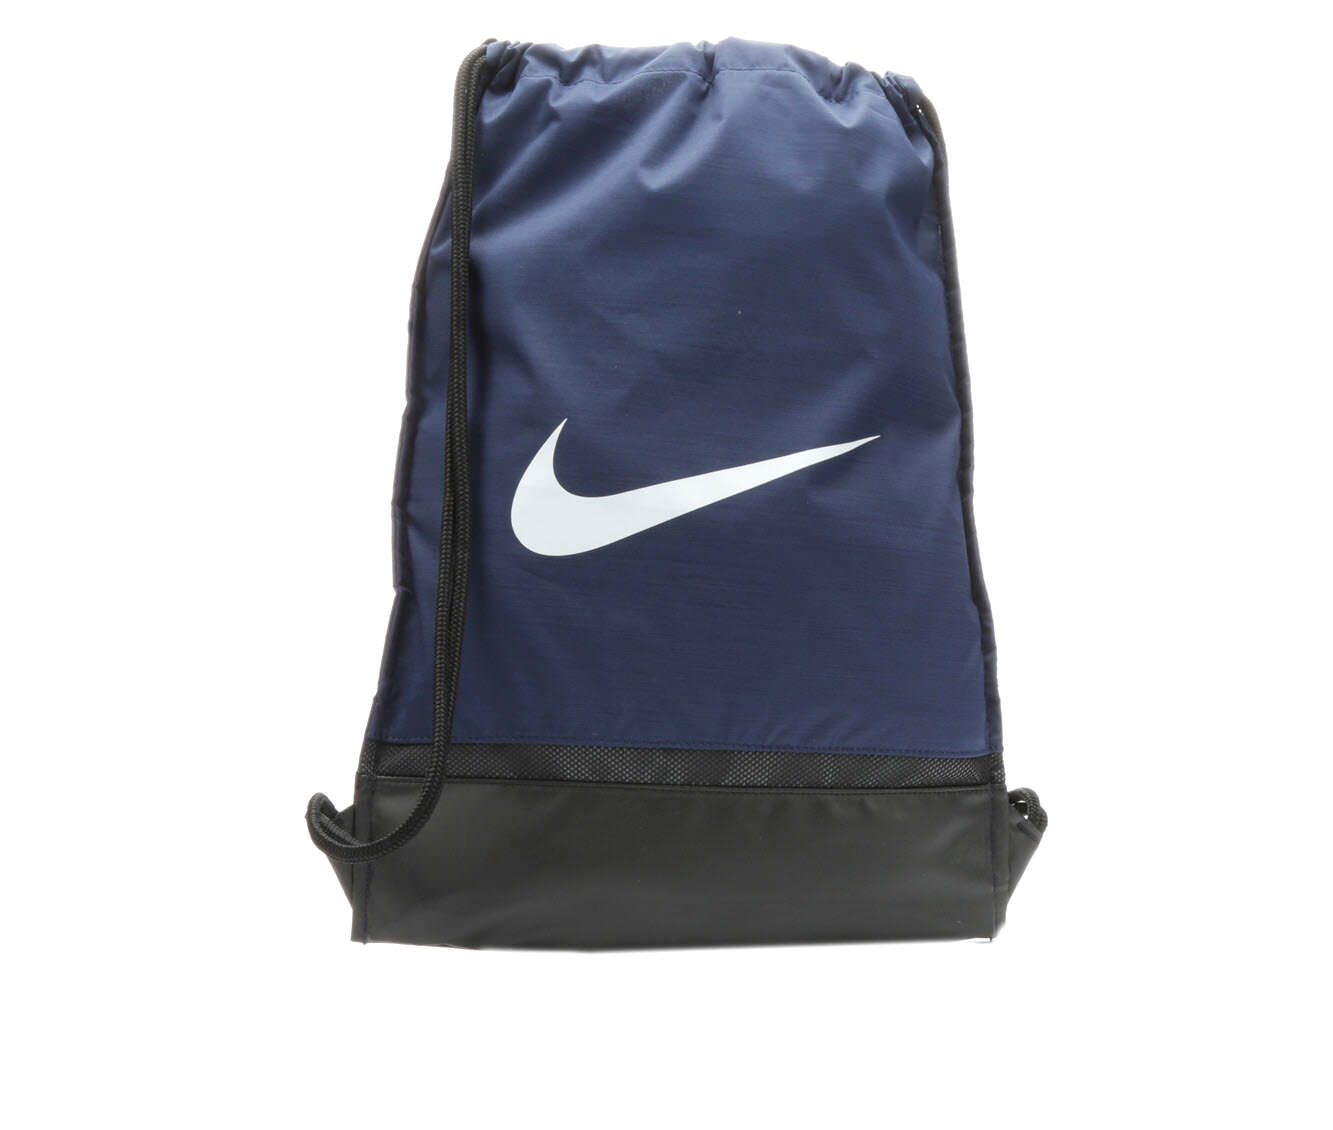 0dce379ea5ab Buy air jordan drawstring backpack   up to 65% Discounts